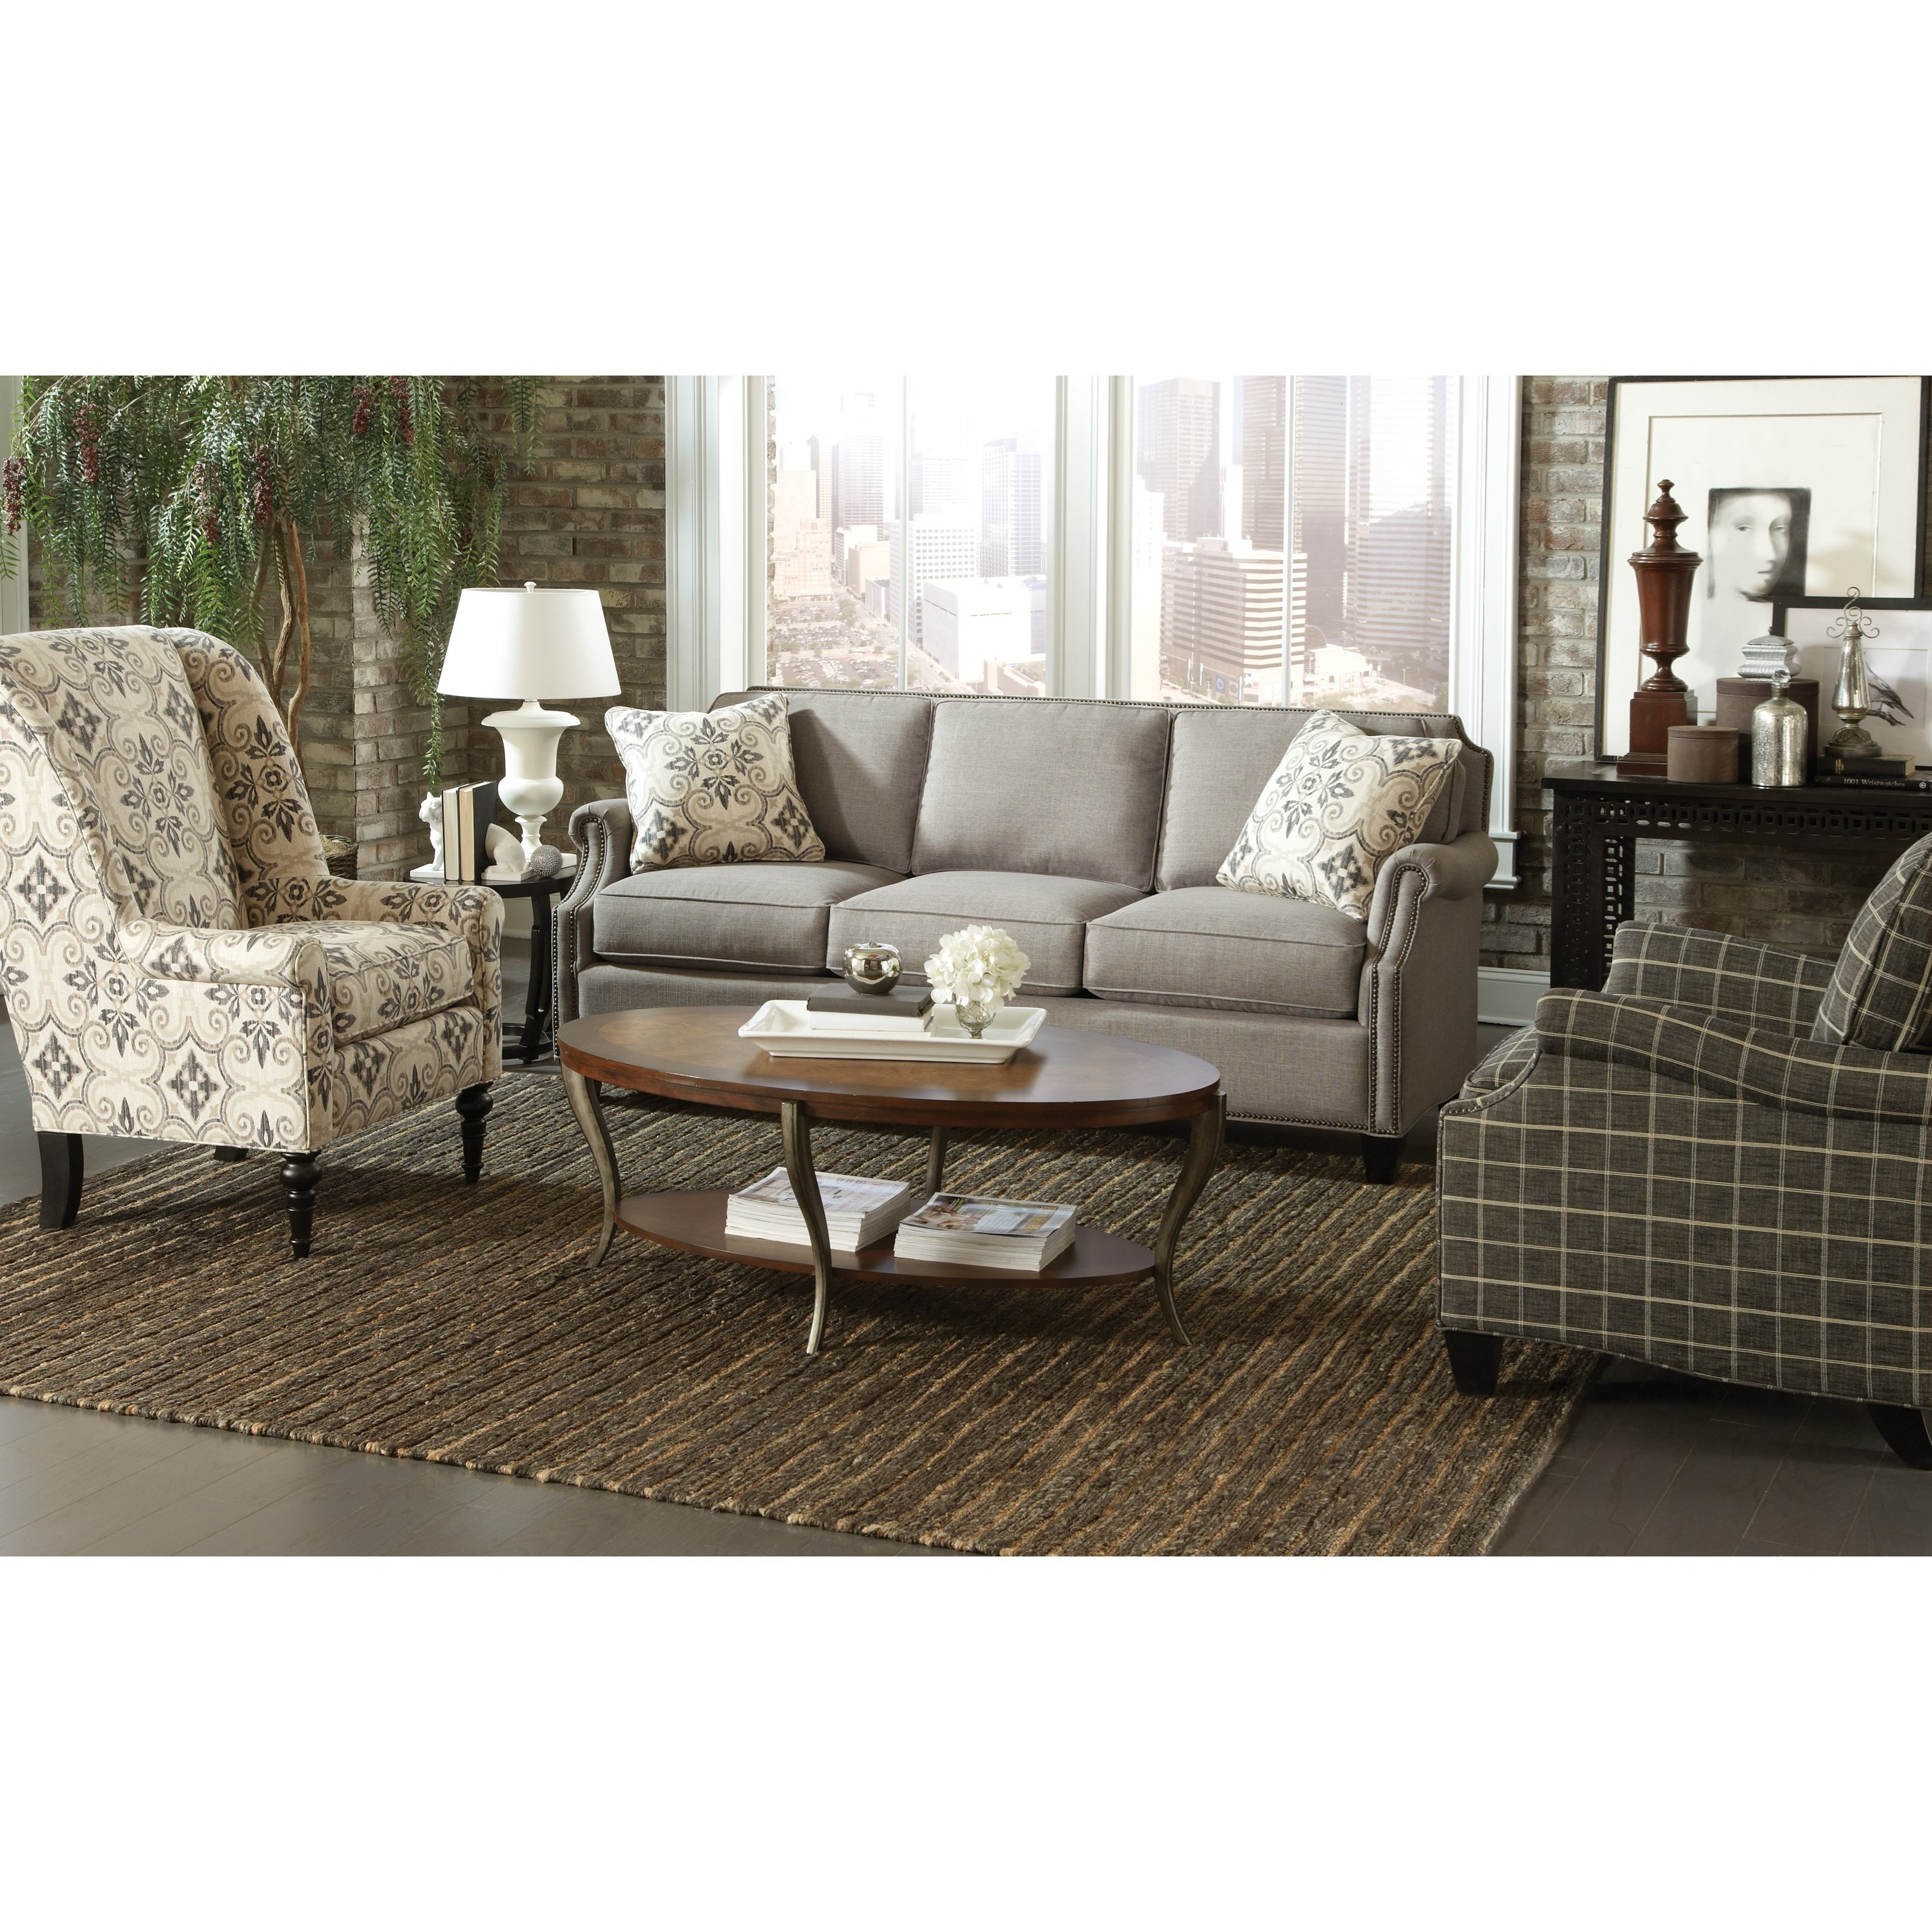 938350BD Living Room Group by Craftmaster at Baer's Furniture